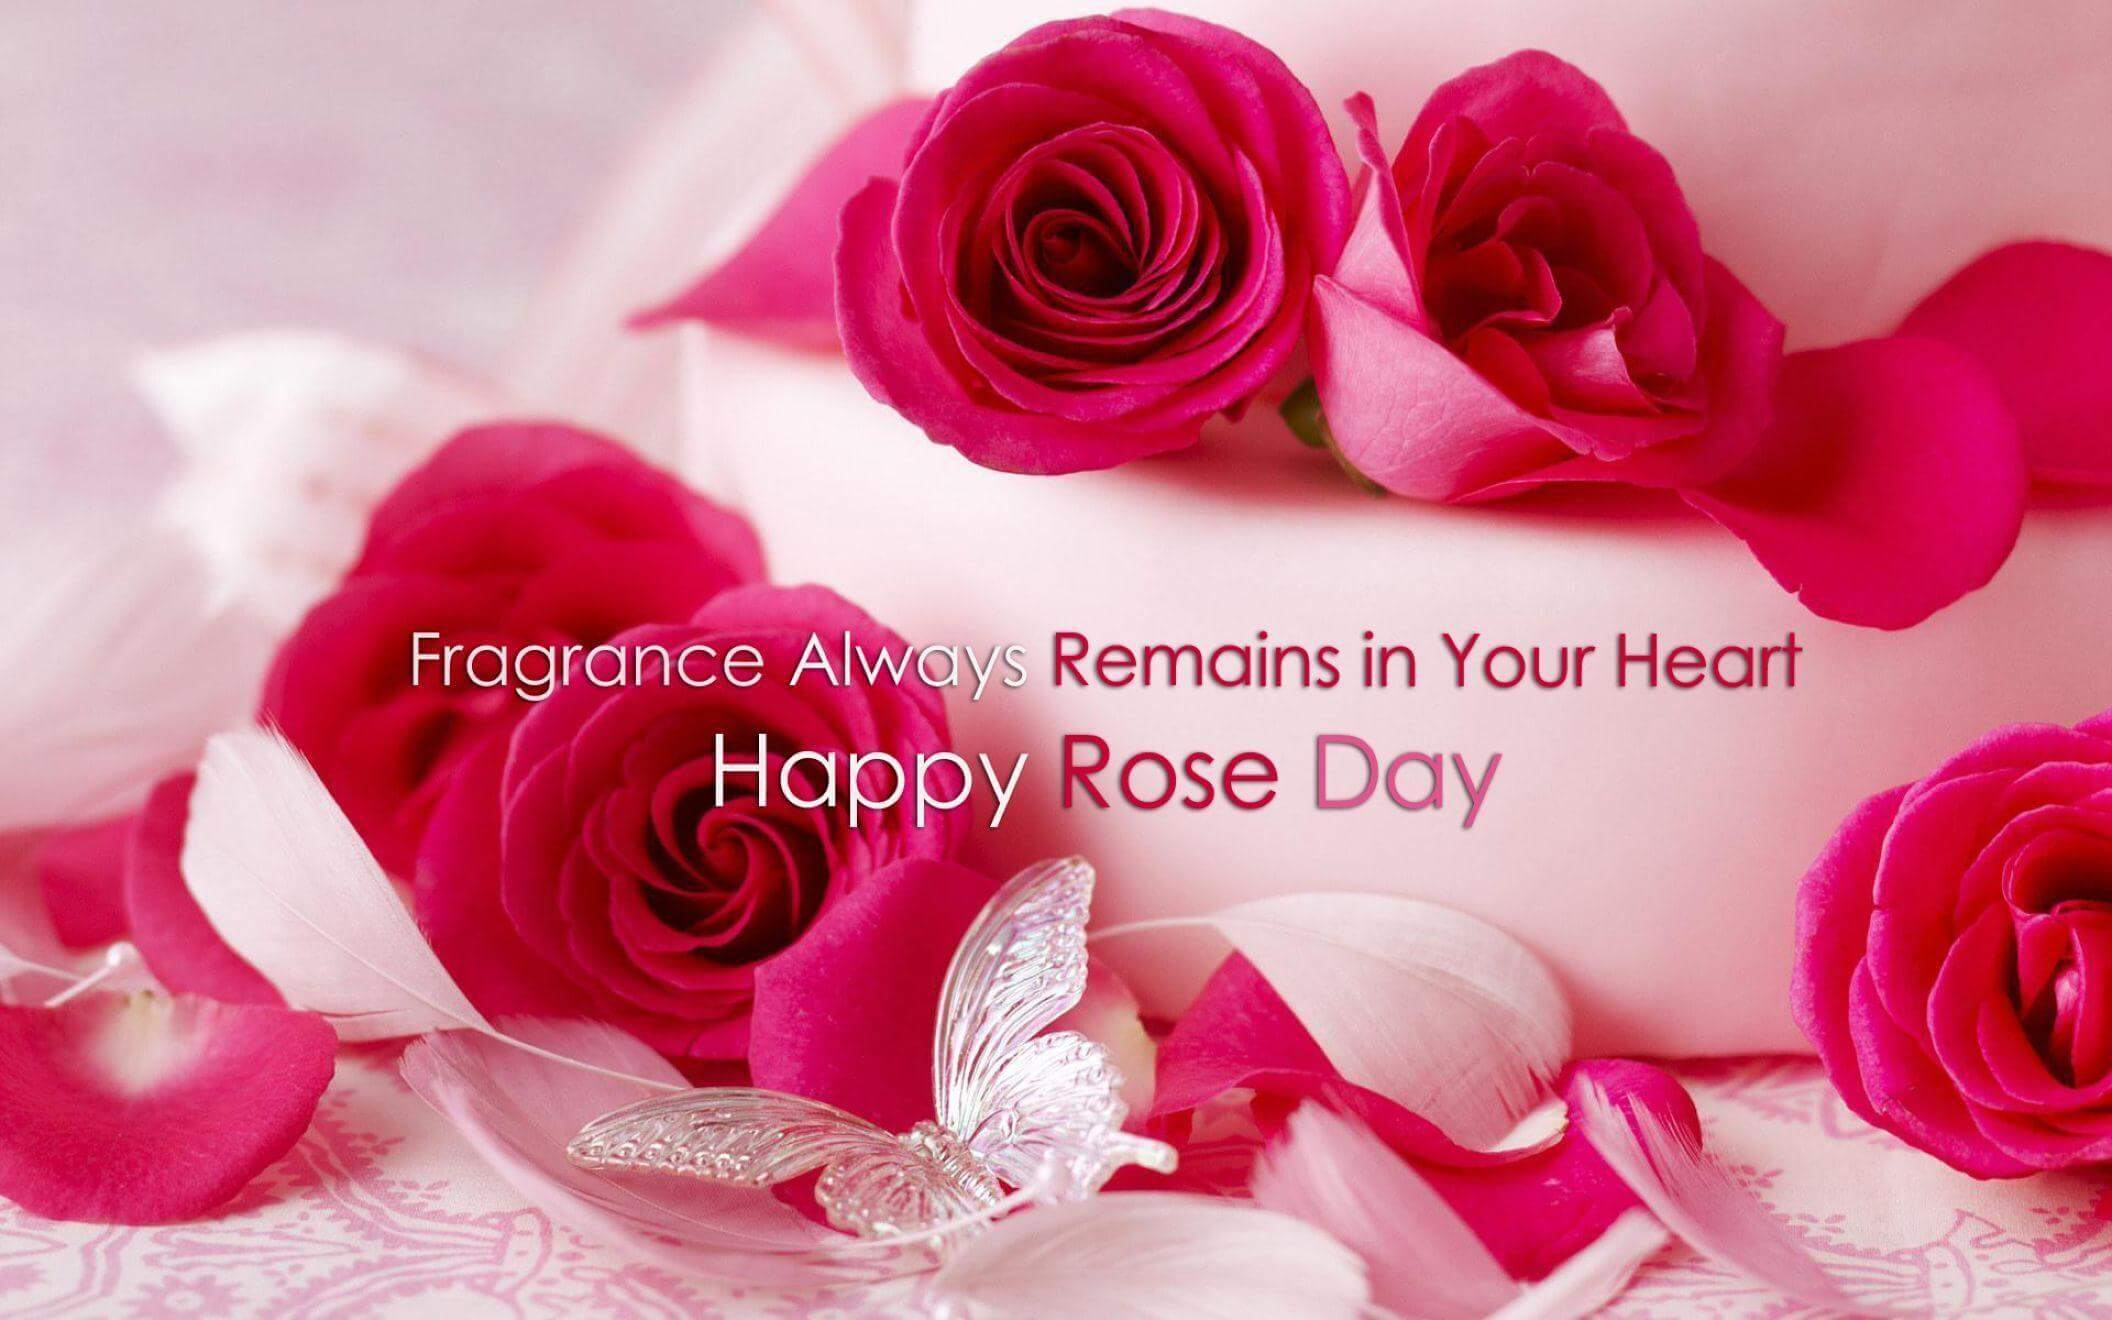 happy rose day wishes quotes fragrance heart love image pc hd wallpaper